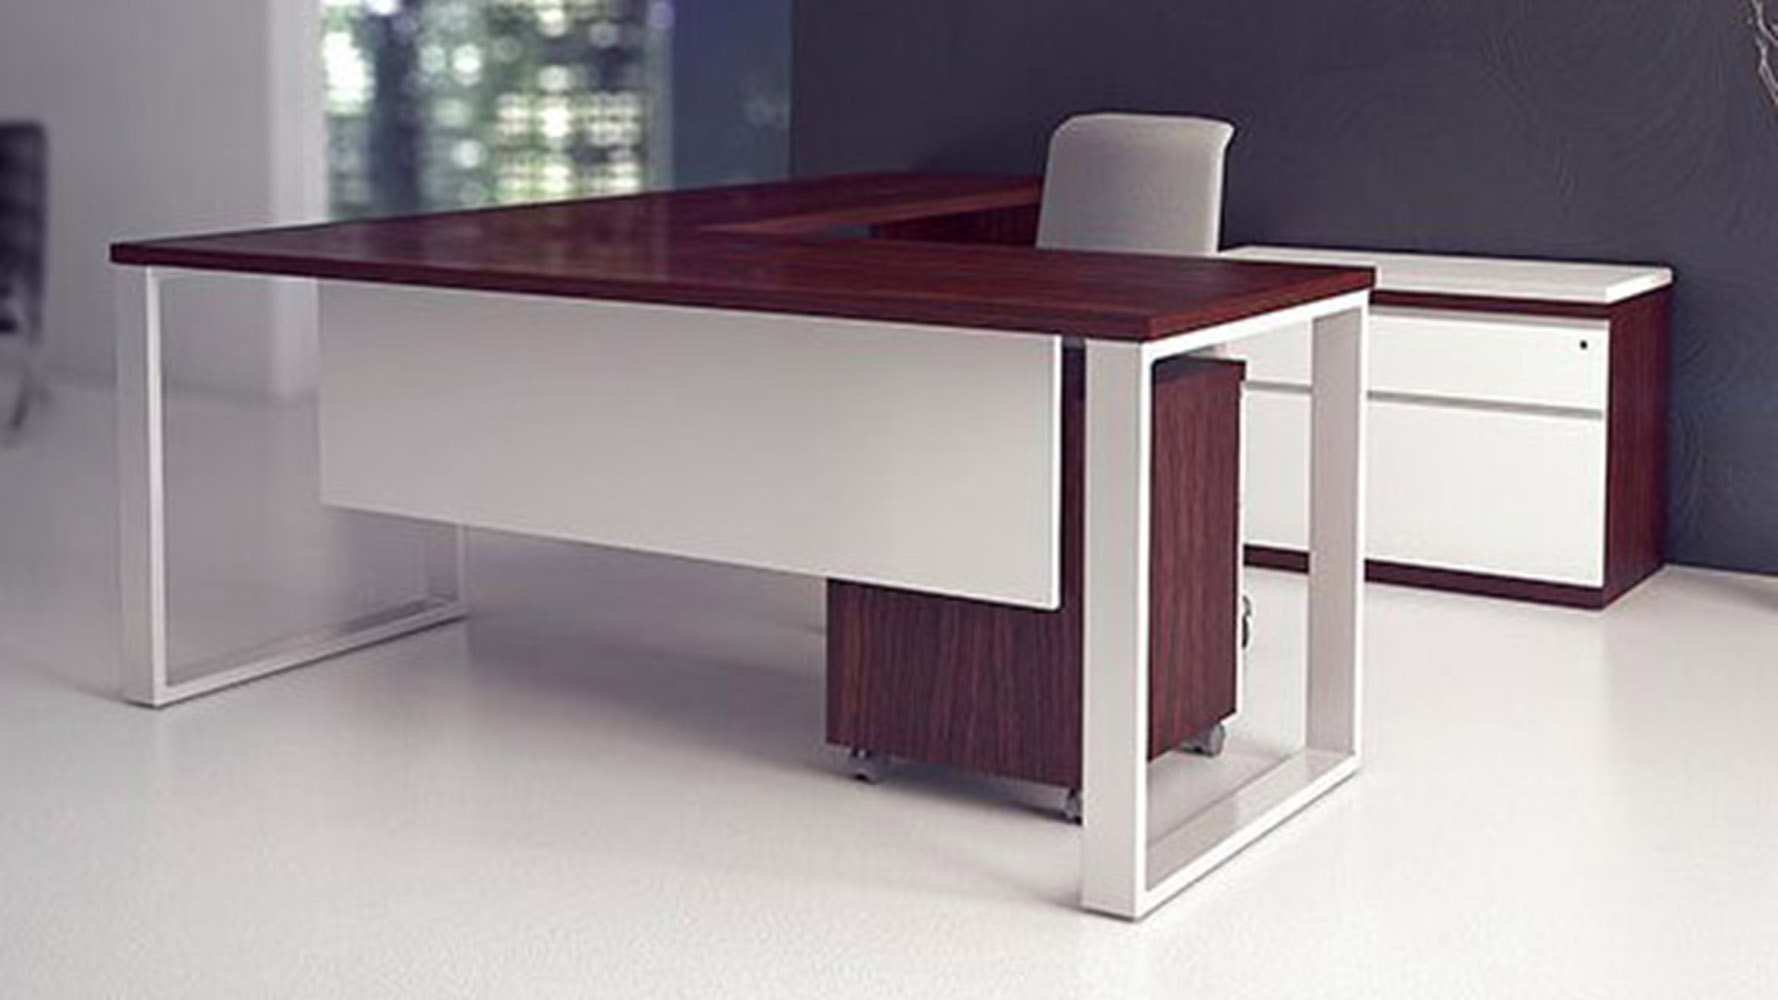 Modern Desk modern at two l-shaped desk + pedestal + credenza - biedermeier